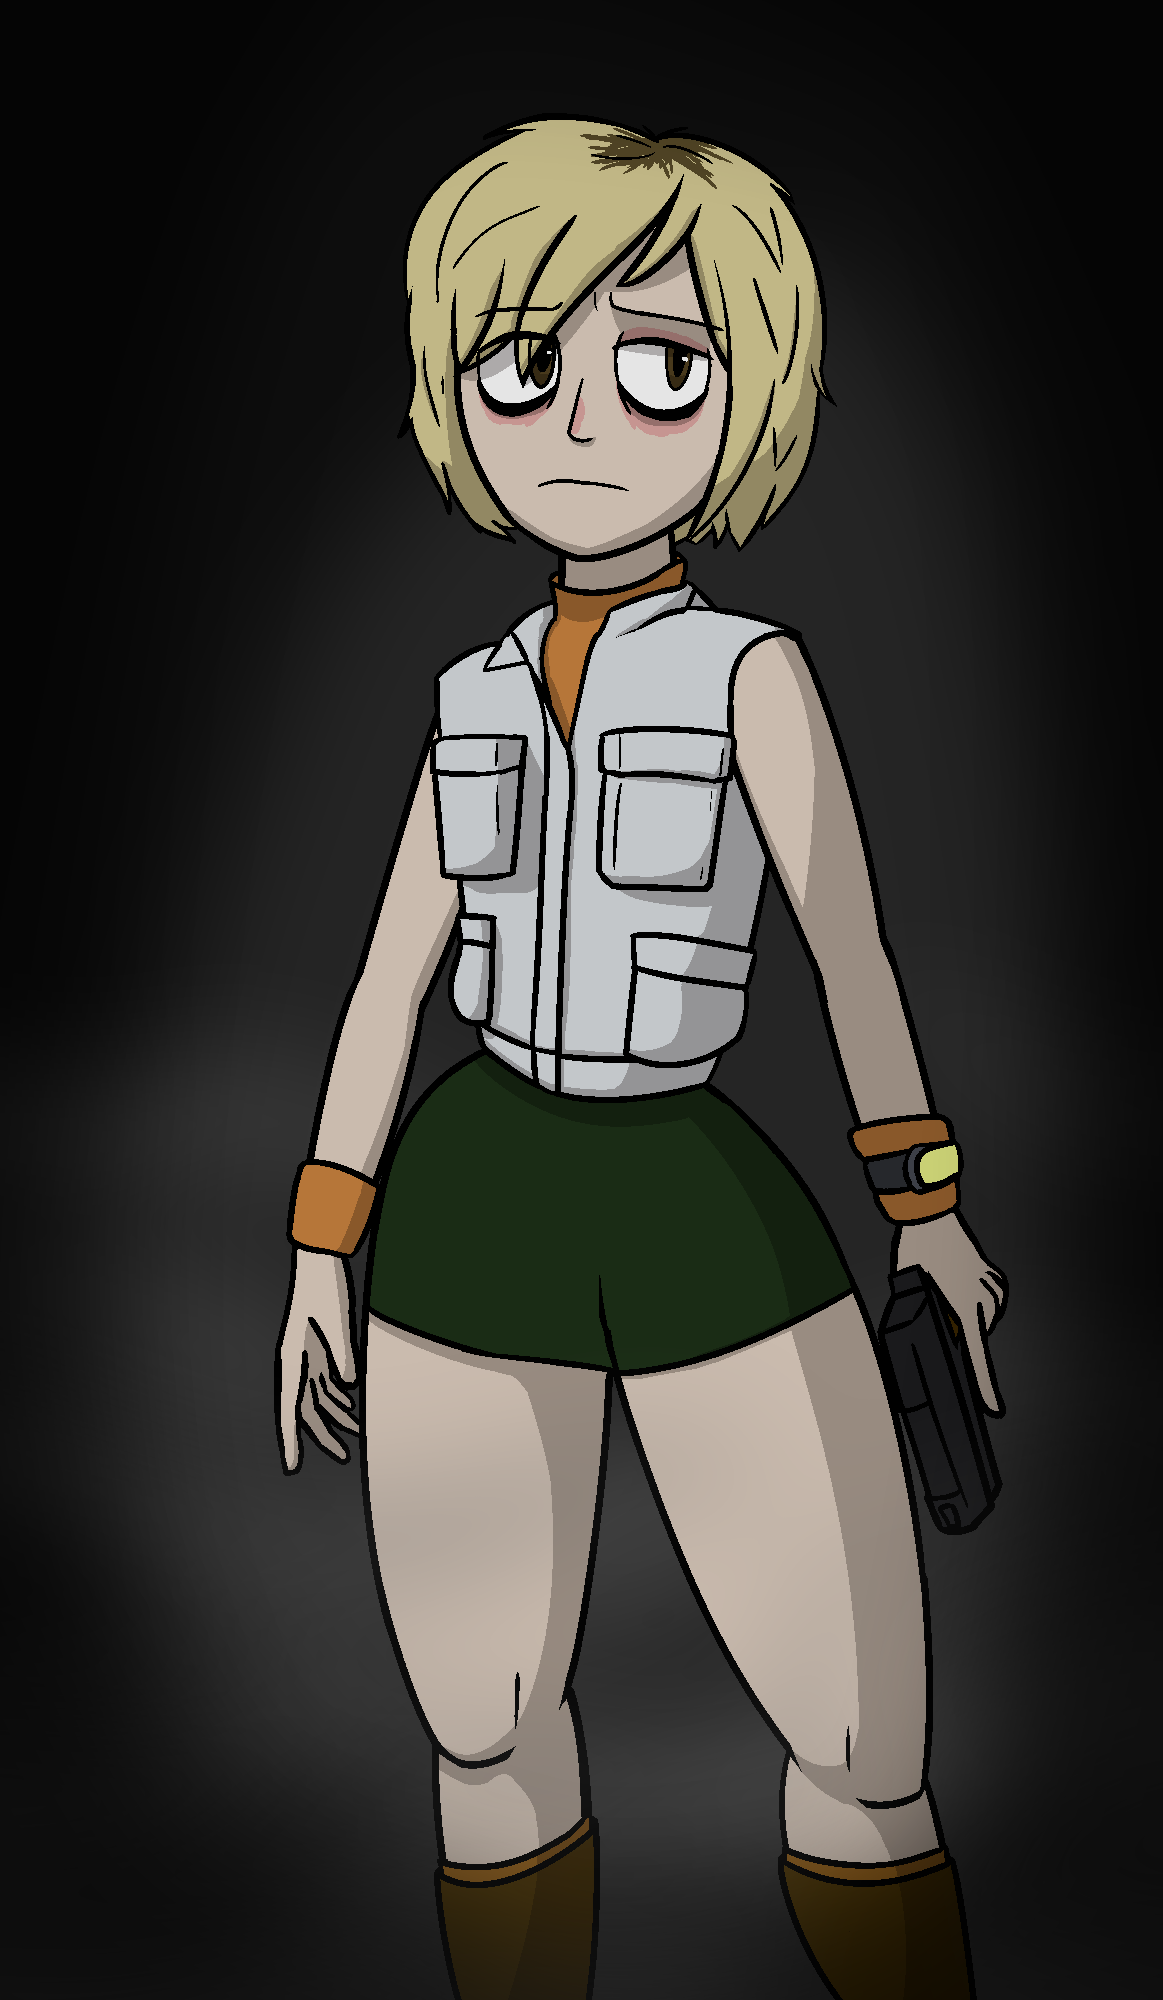 Heather Of Silent Hill 3 Fame The Character Heather From Silent Hill 3 Silent Hill 3 Character Hea By Dipsheet On Newgrounds